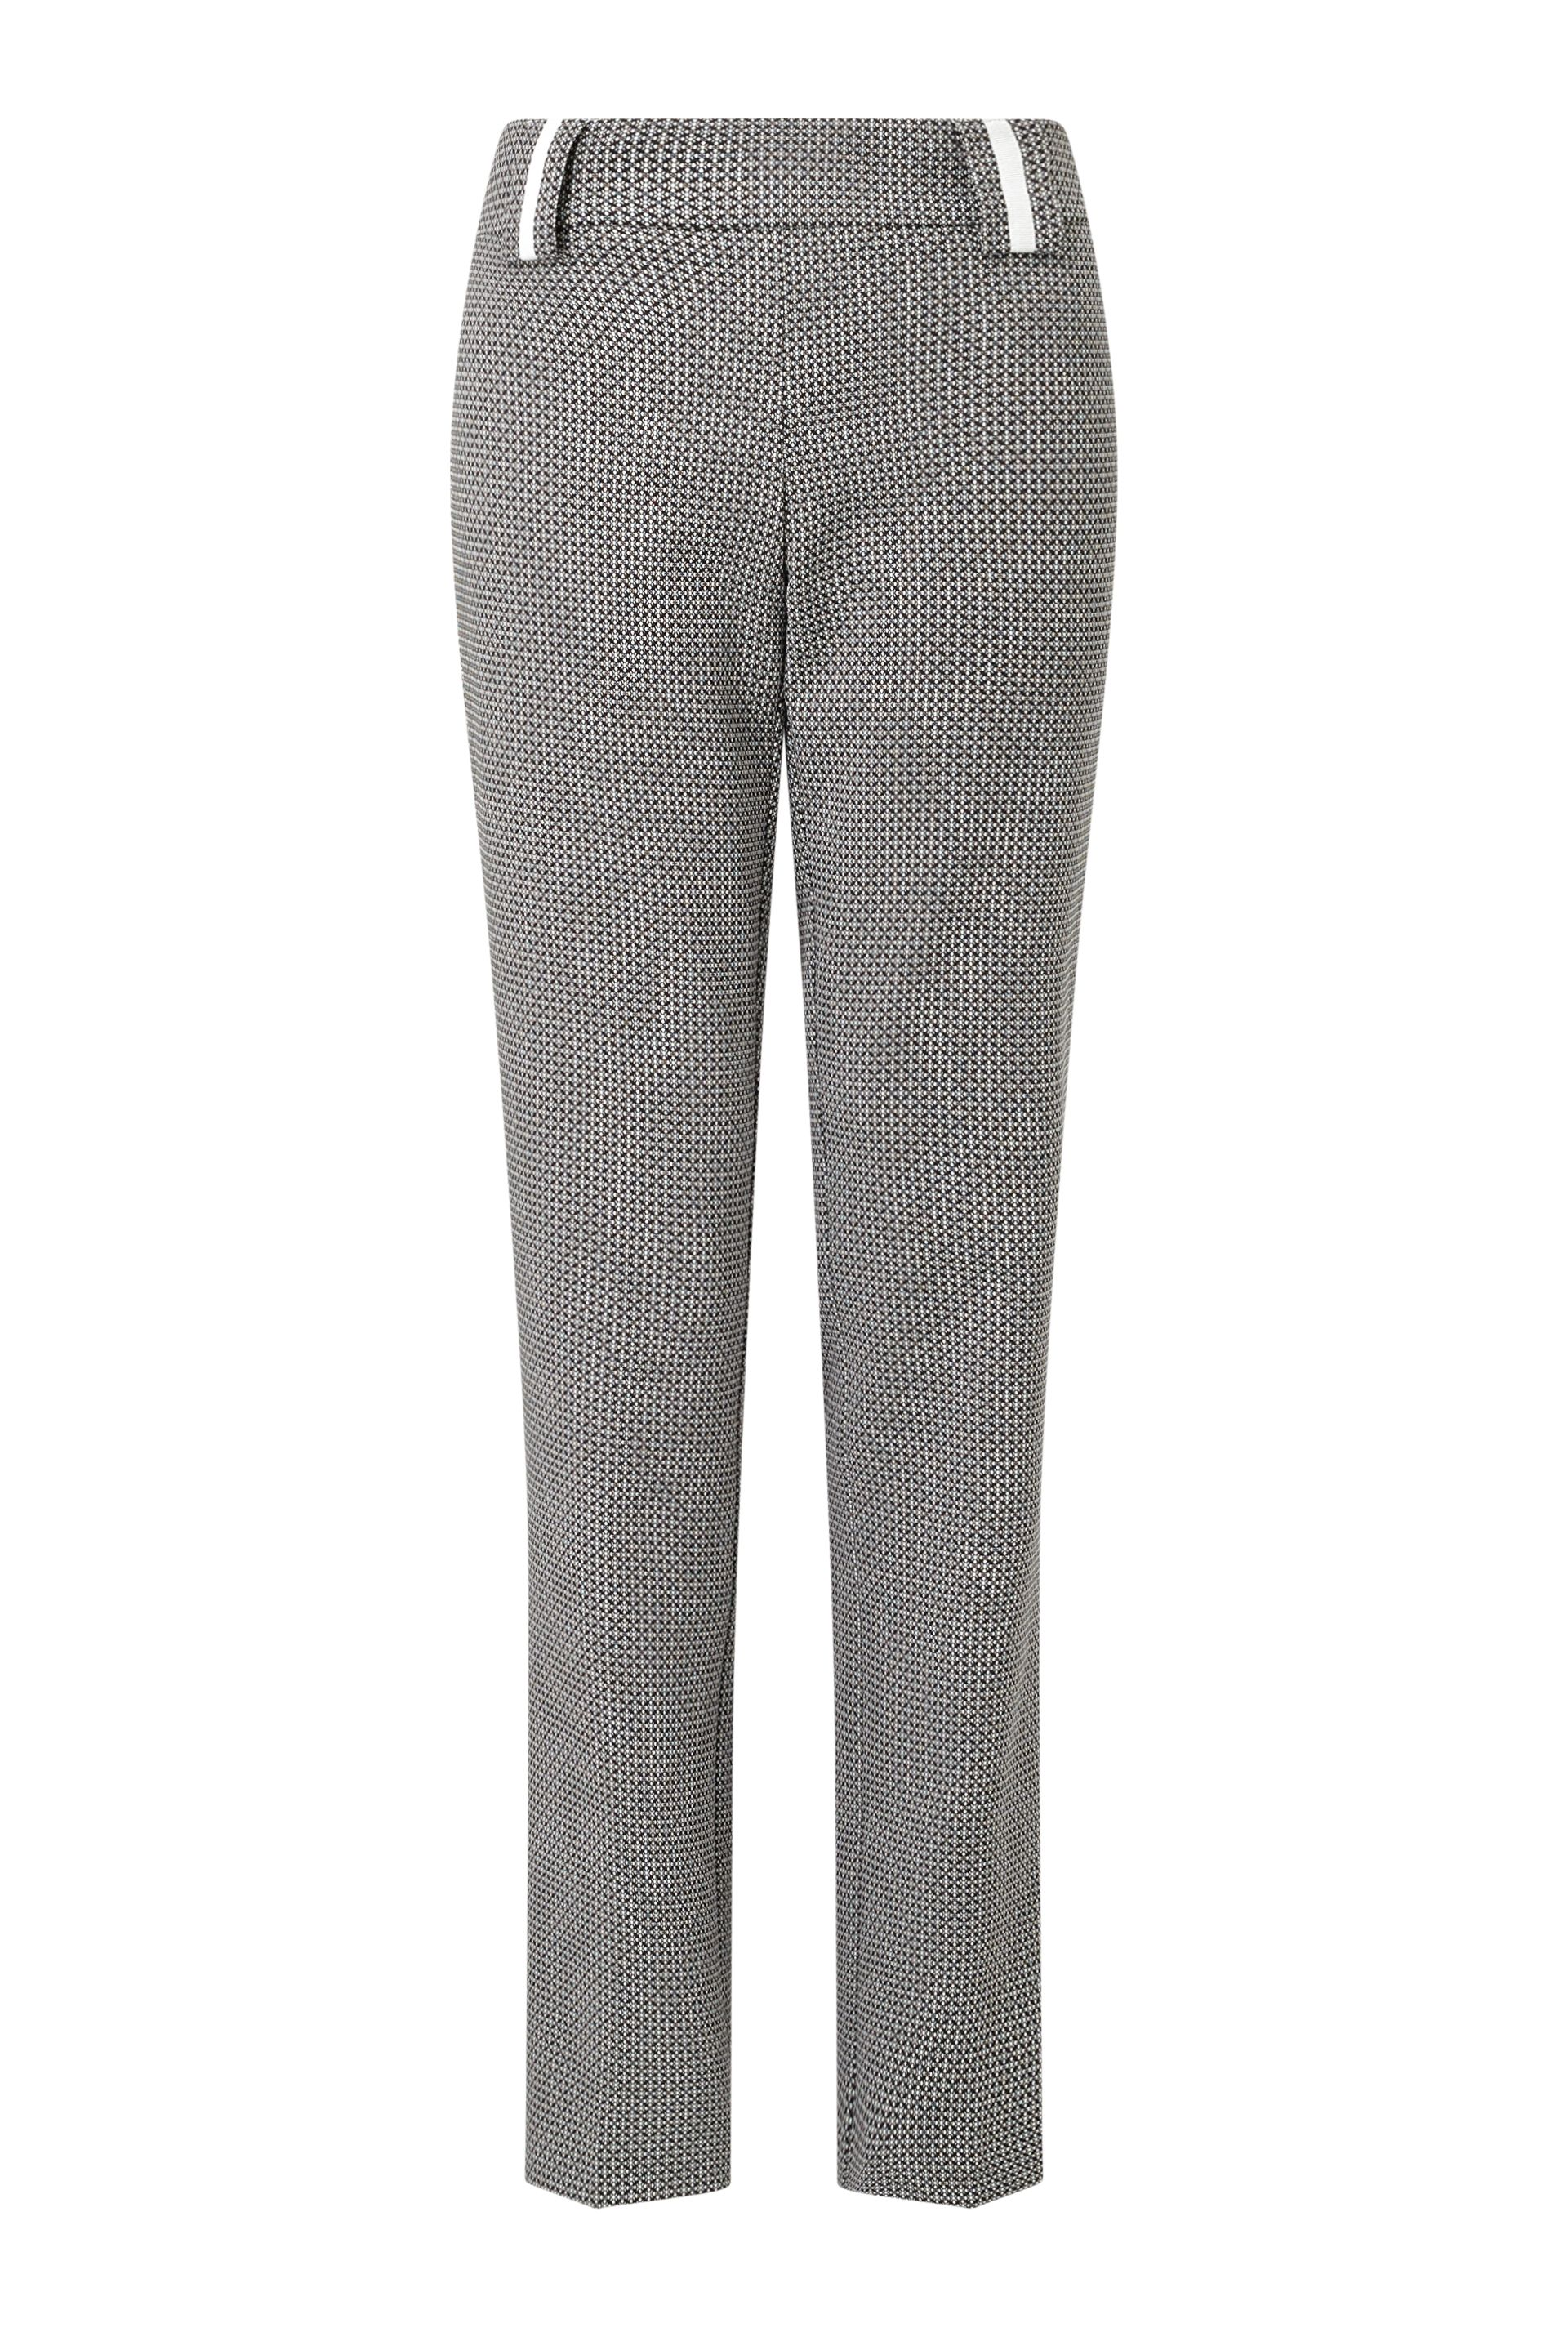 James Lakeland Jacquard Suit Trousers, Black